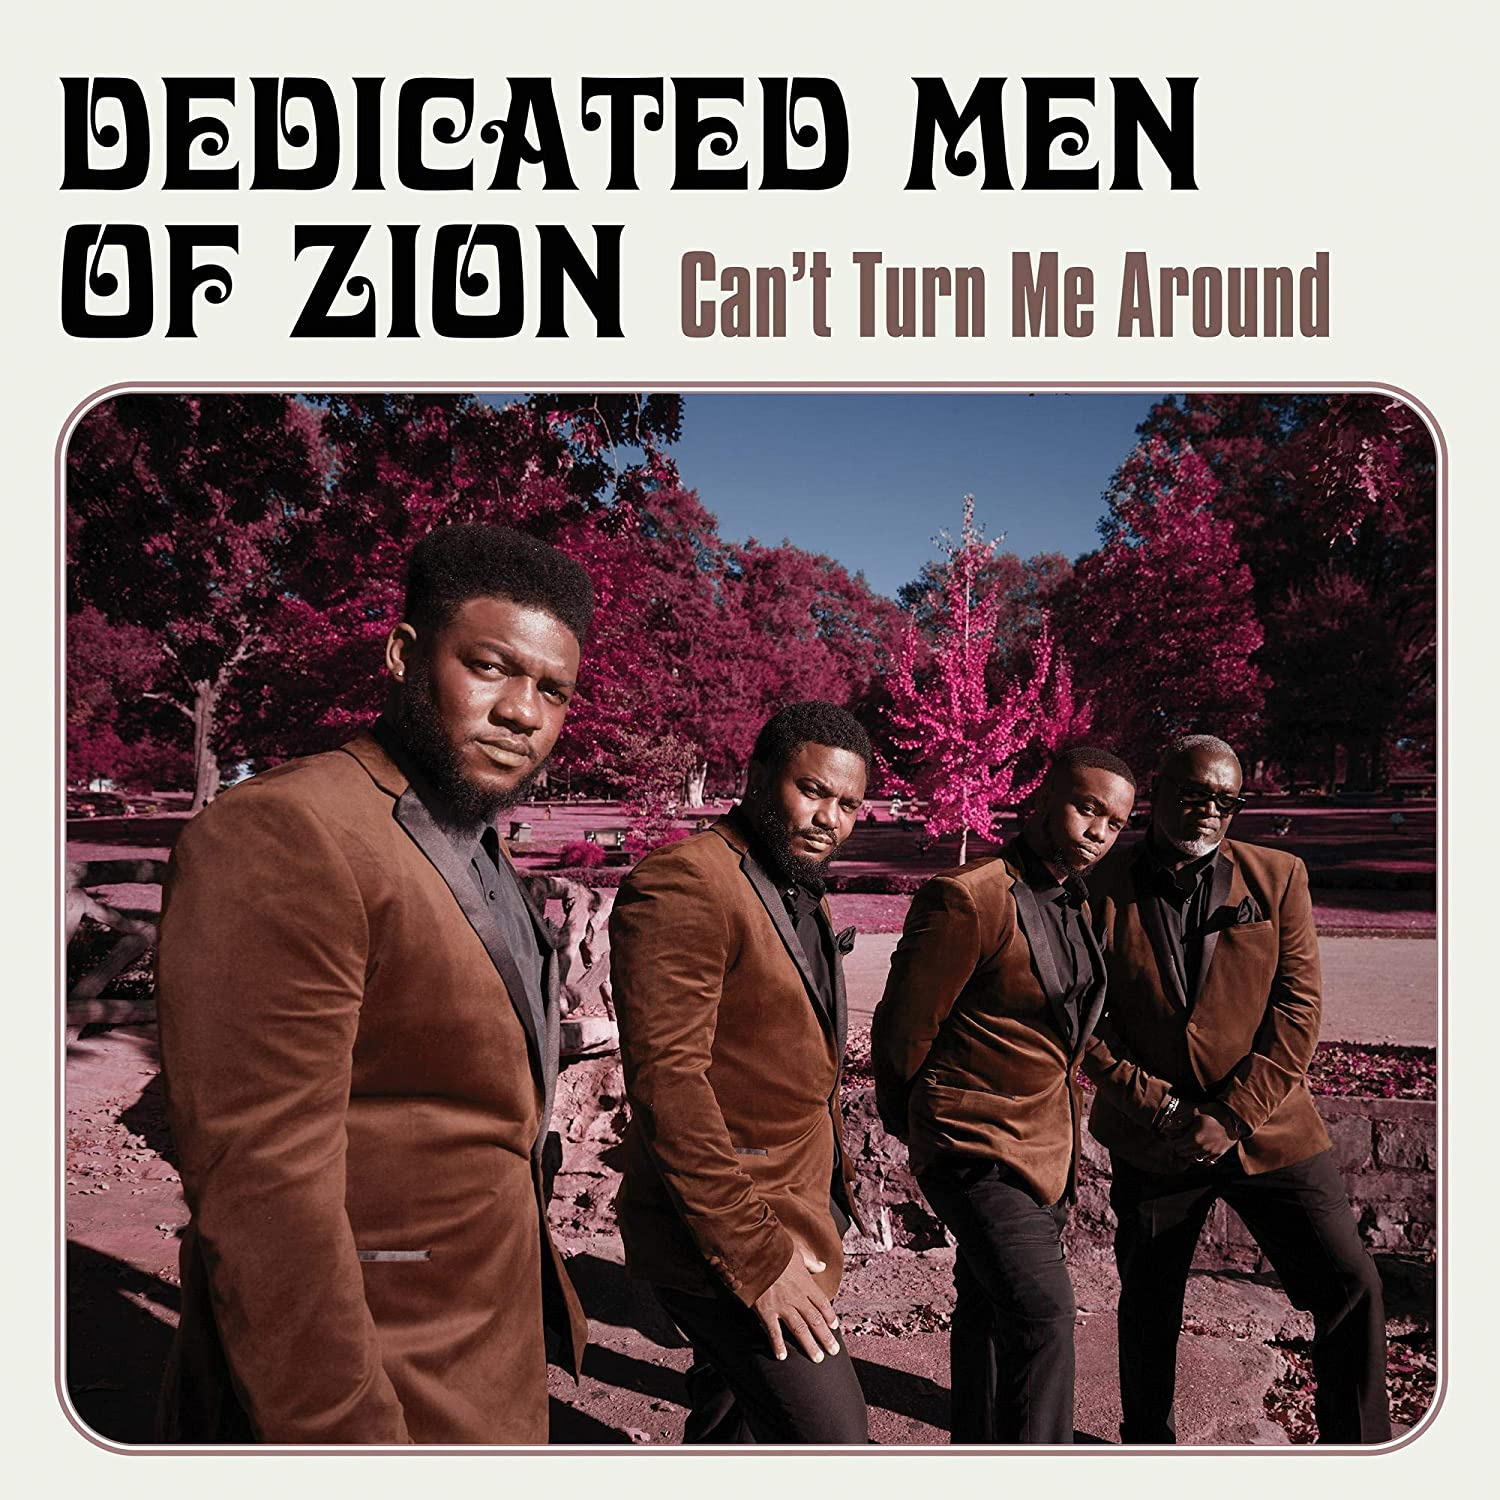 Dedicated Men Of Zion - Can't Turn Me Around [CD] - Urban Vinyl | Records, Headphones, and more.